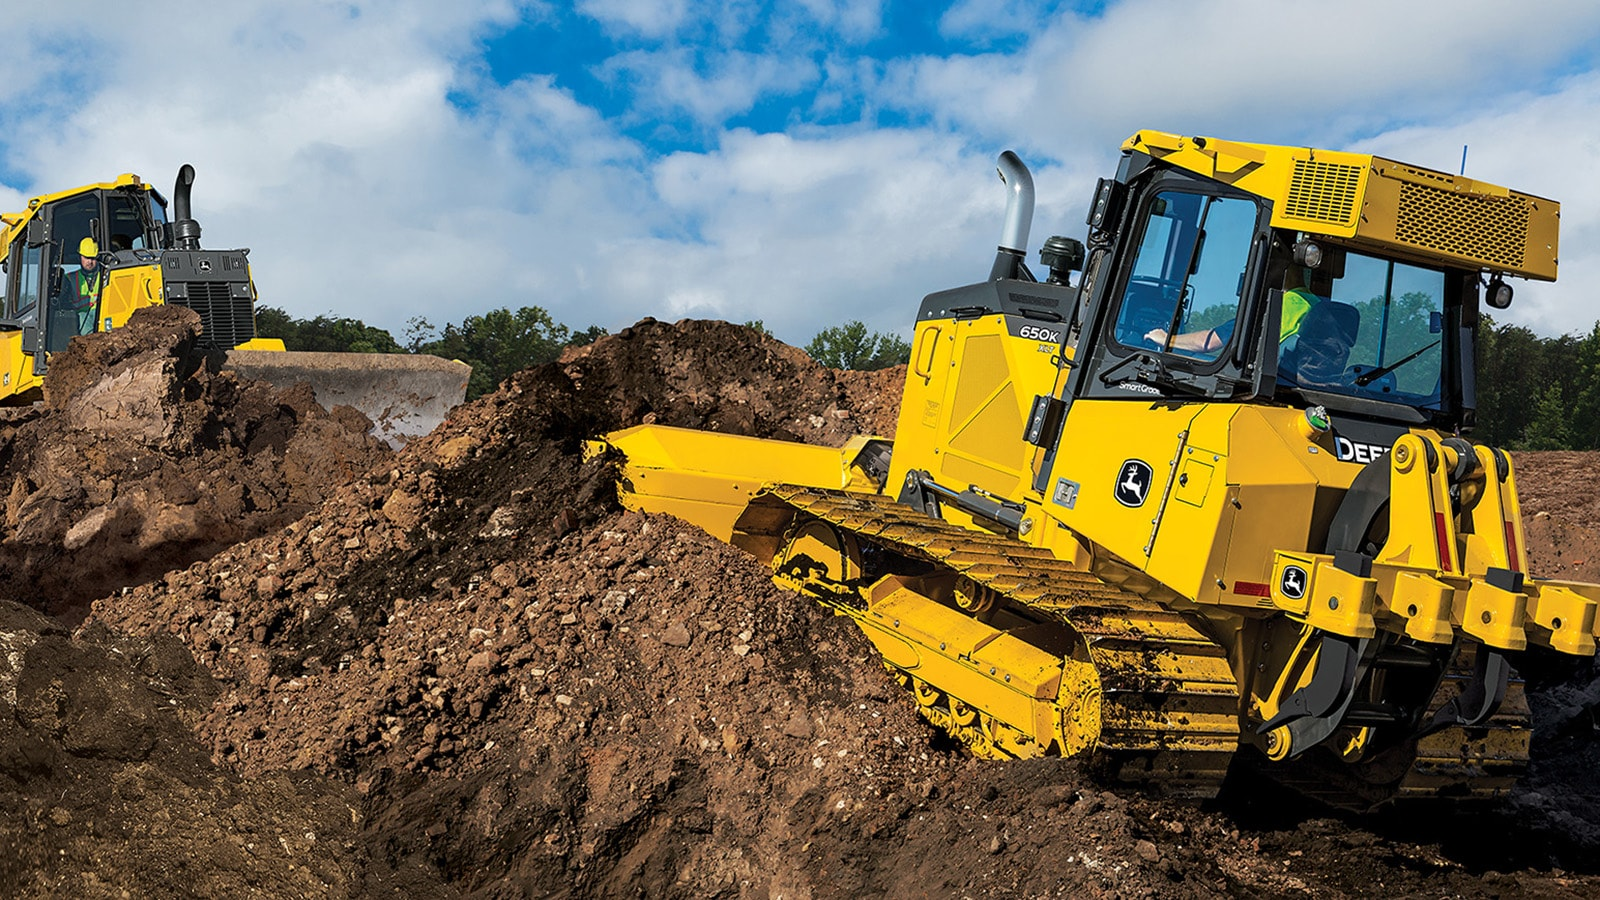 John Deere SmartGrade is now available on 650K crawler dozer